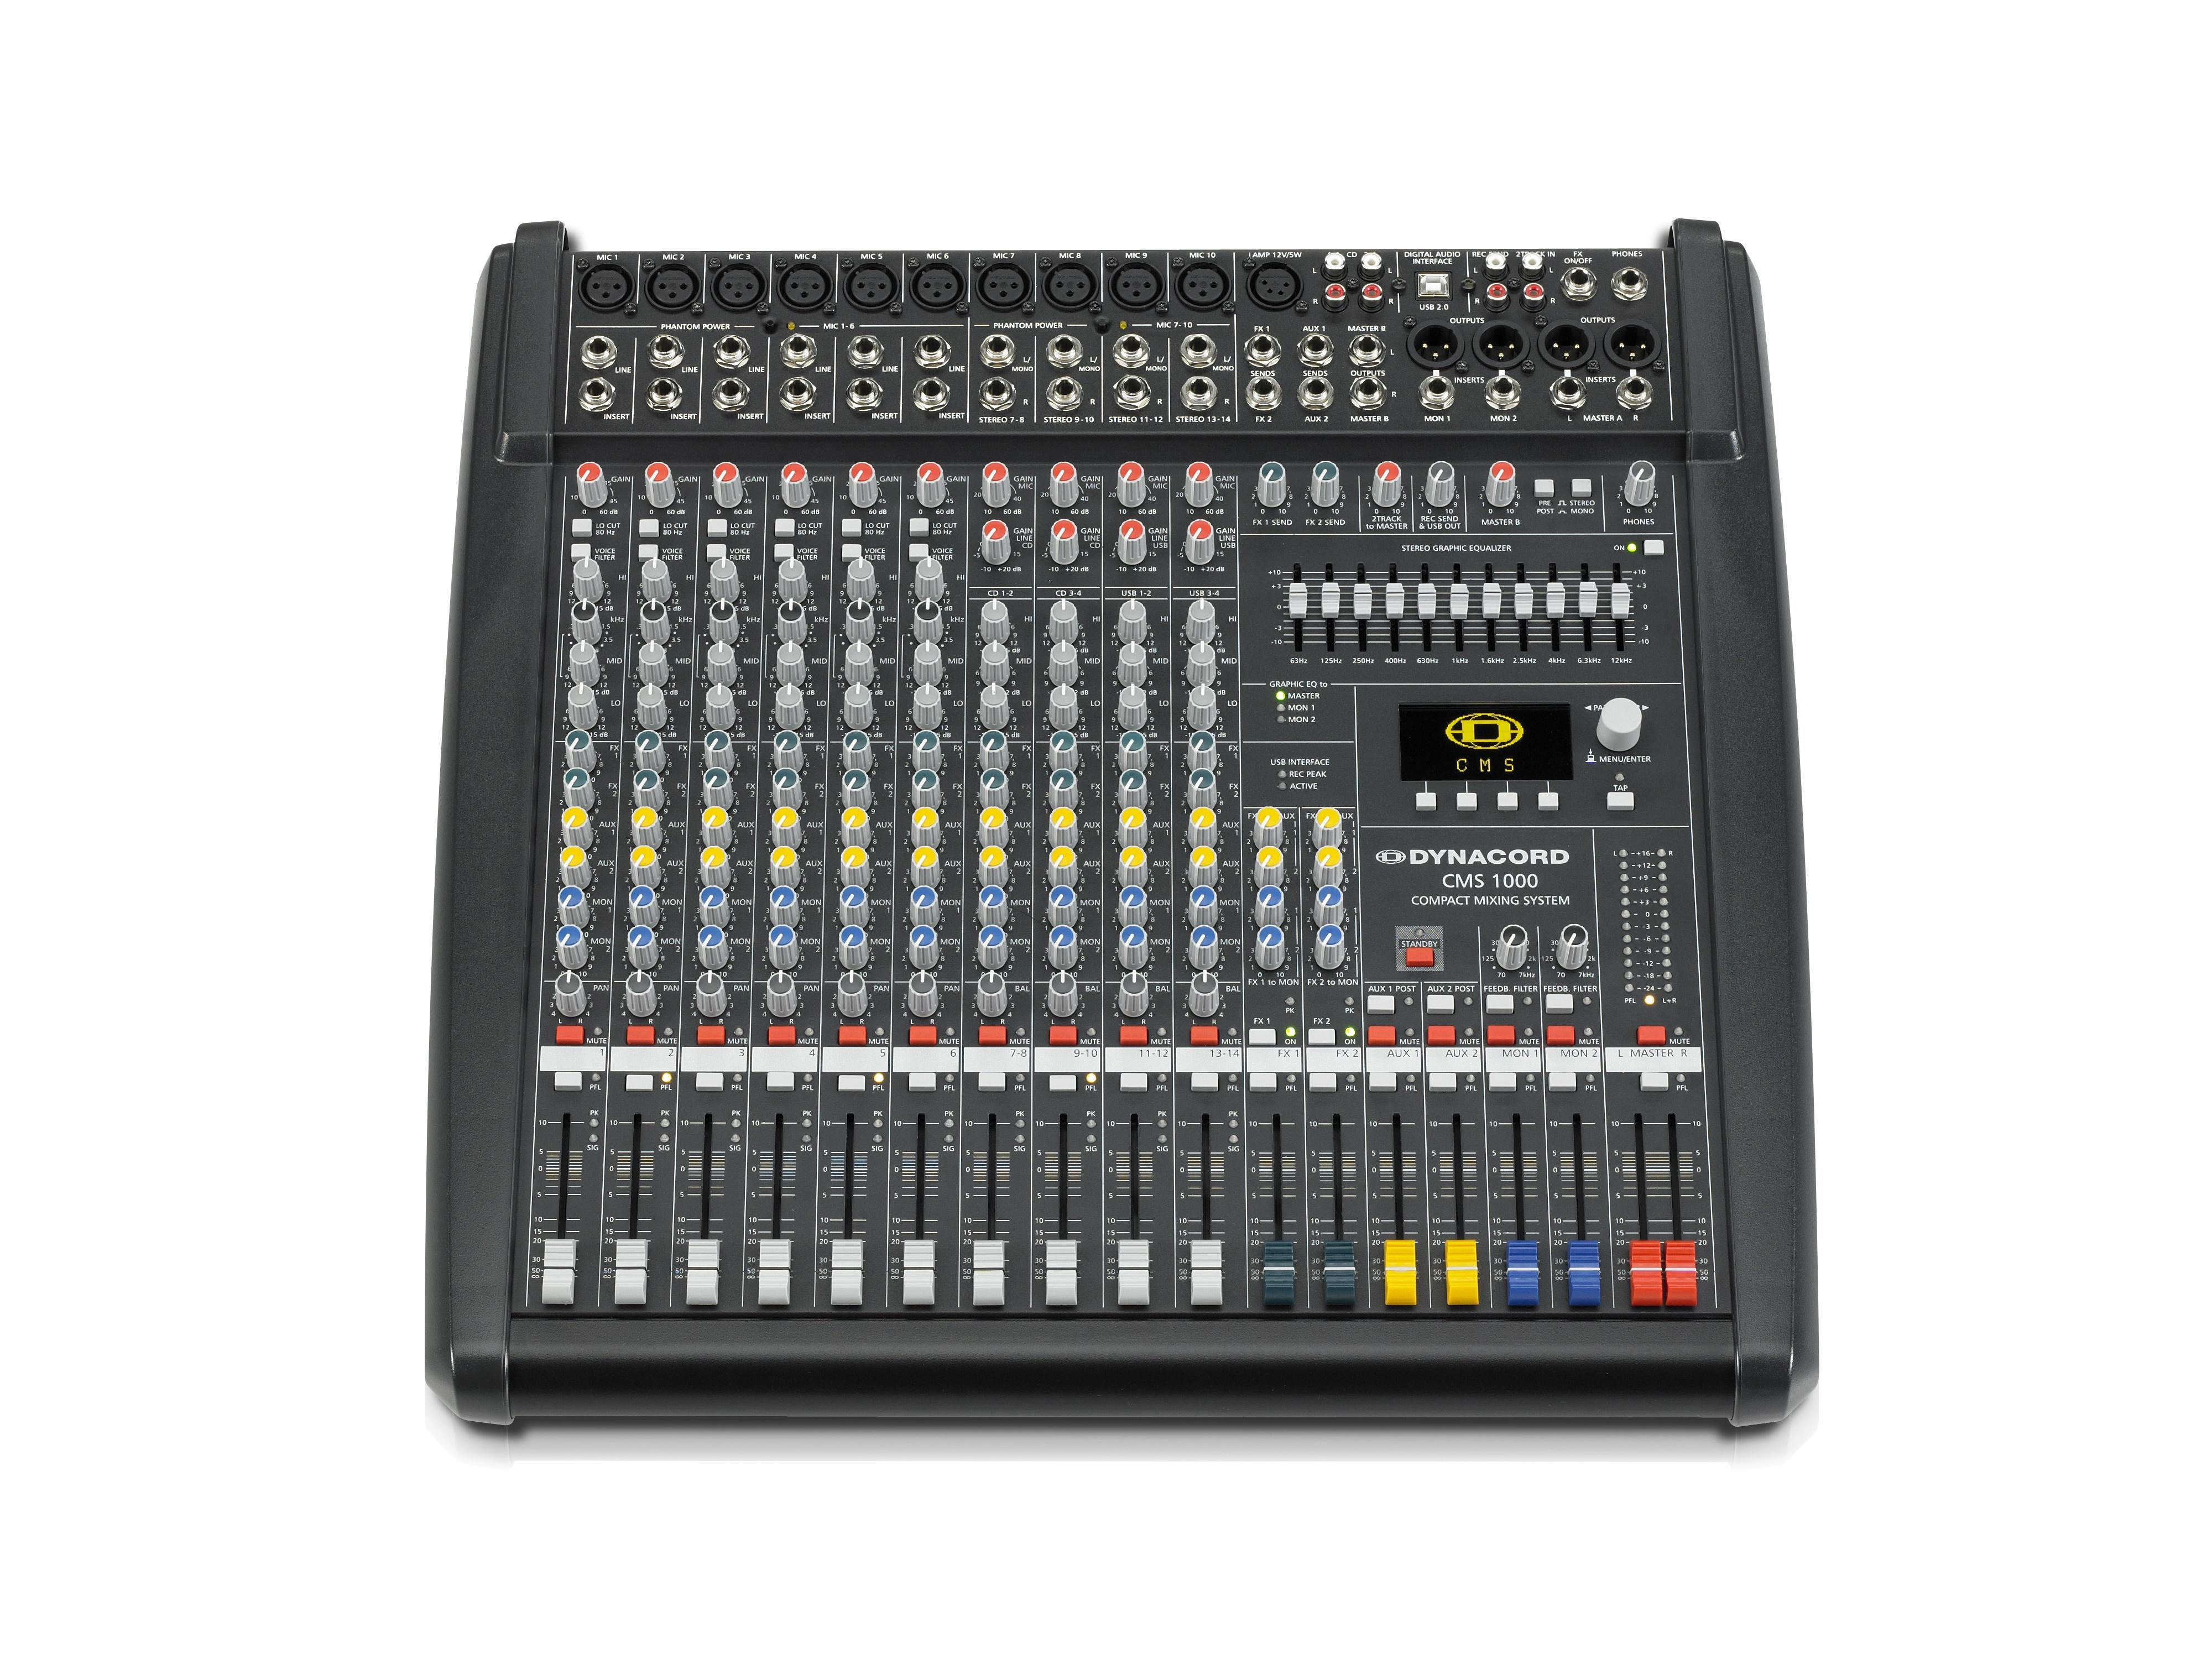 DCCMS10003MIG 6 Mic/Line w 4 Mic/Stereo Line Channels/6 x AUX/Dual 24 bit Stereo Effects/USB-Audio Interface by Dynacord